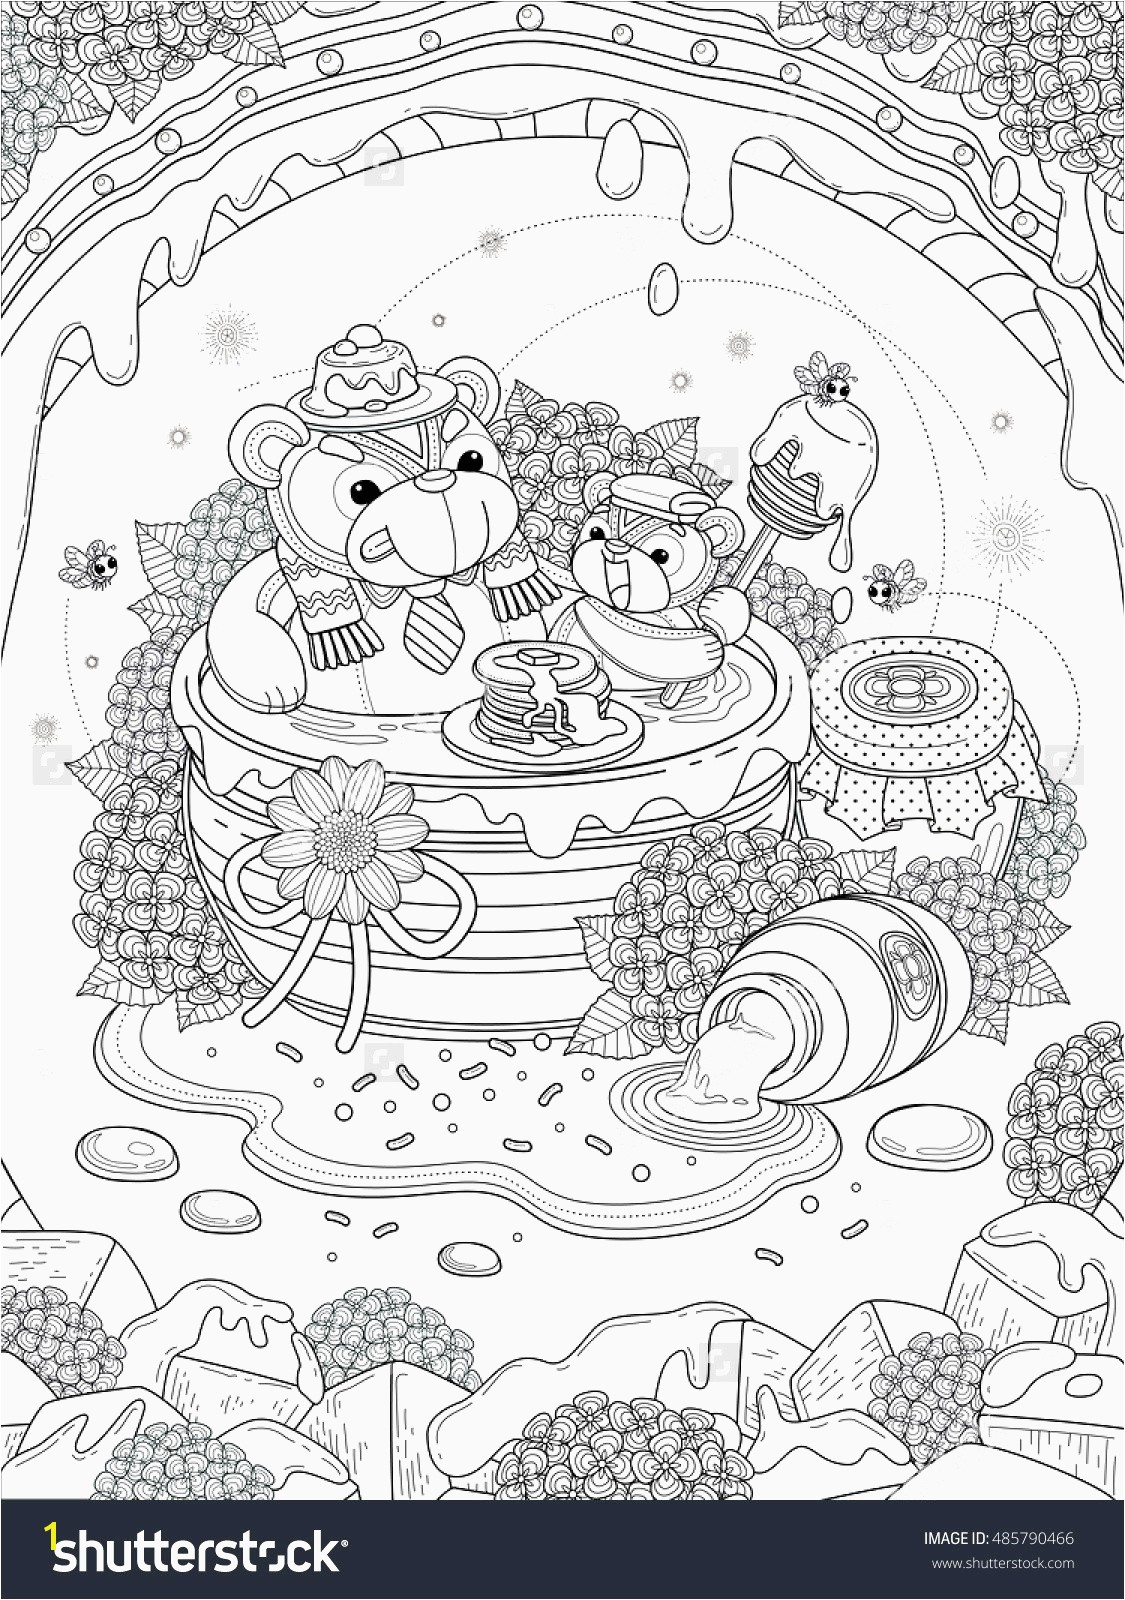 Plex Coloring Pages New S S Media Cache Ak0 Pinimg 736x 0d 71 Printable Christmas Coloring Mandala